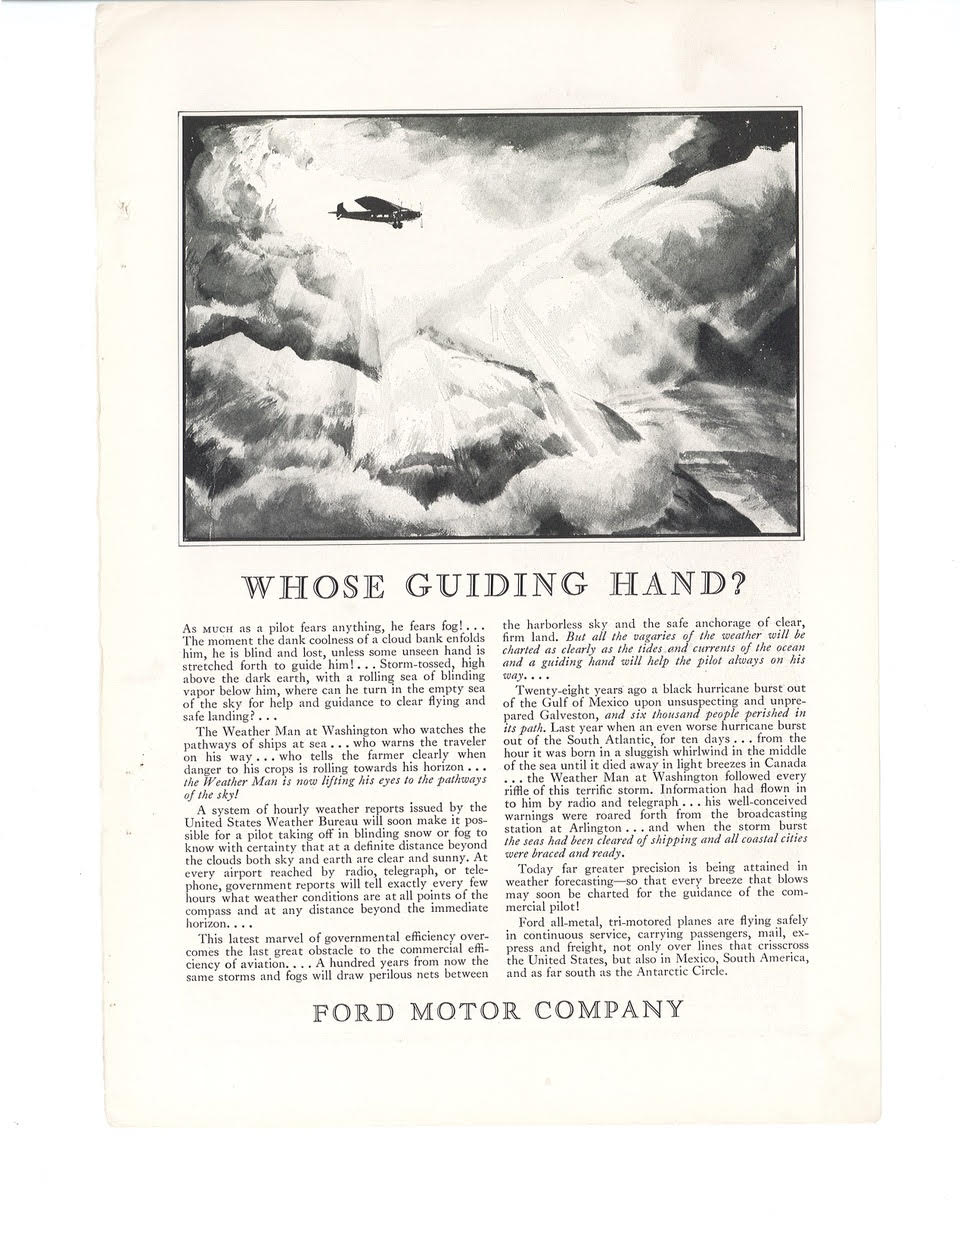 'Whose Guiding Hand?' Advertisement for Ford Motor Company. National Geographic, December 1929.